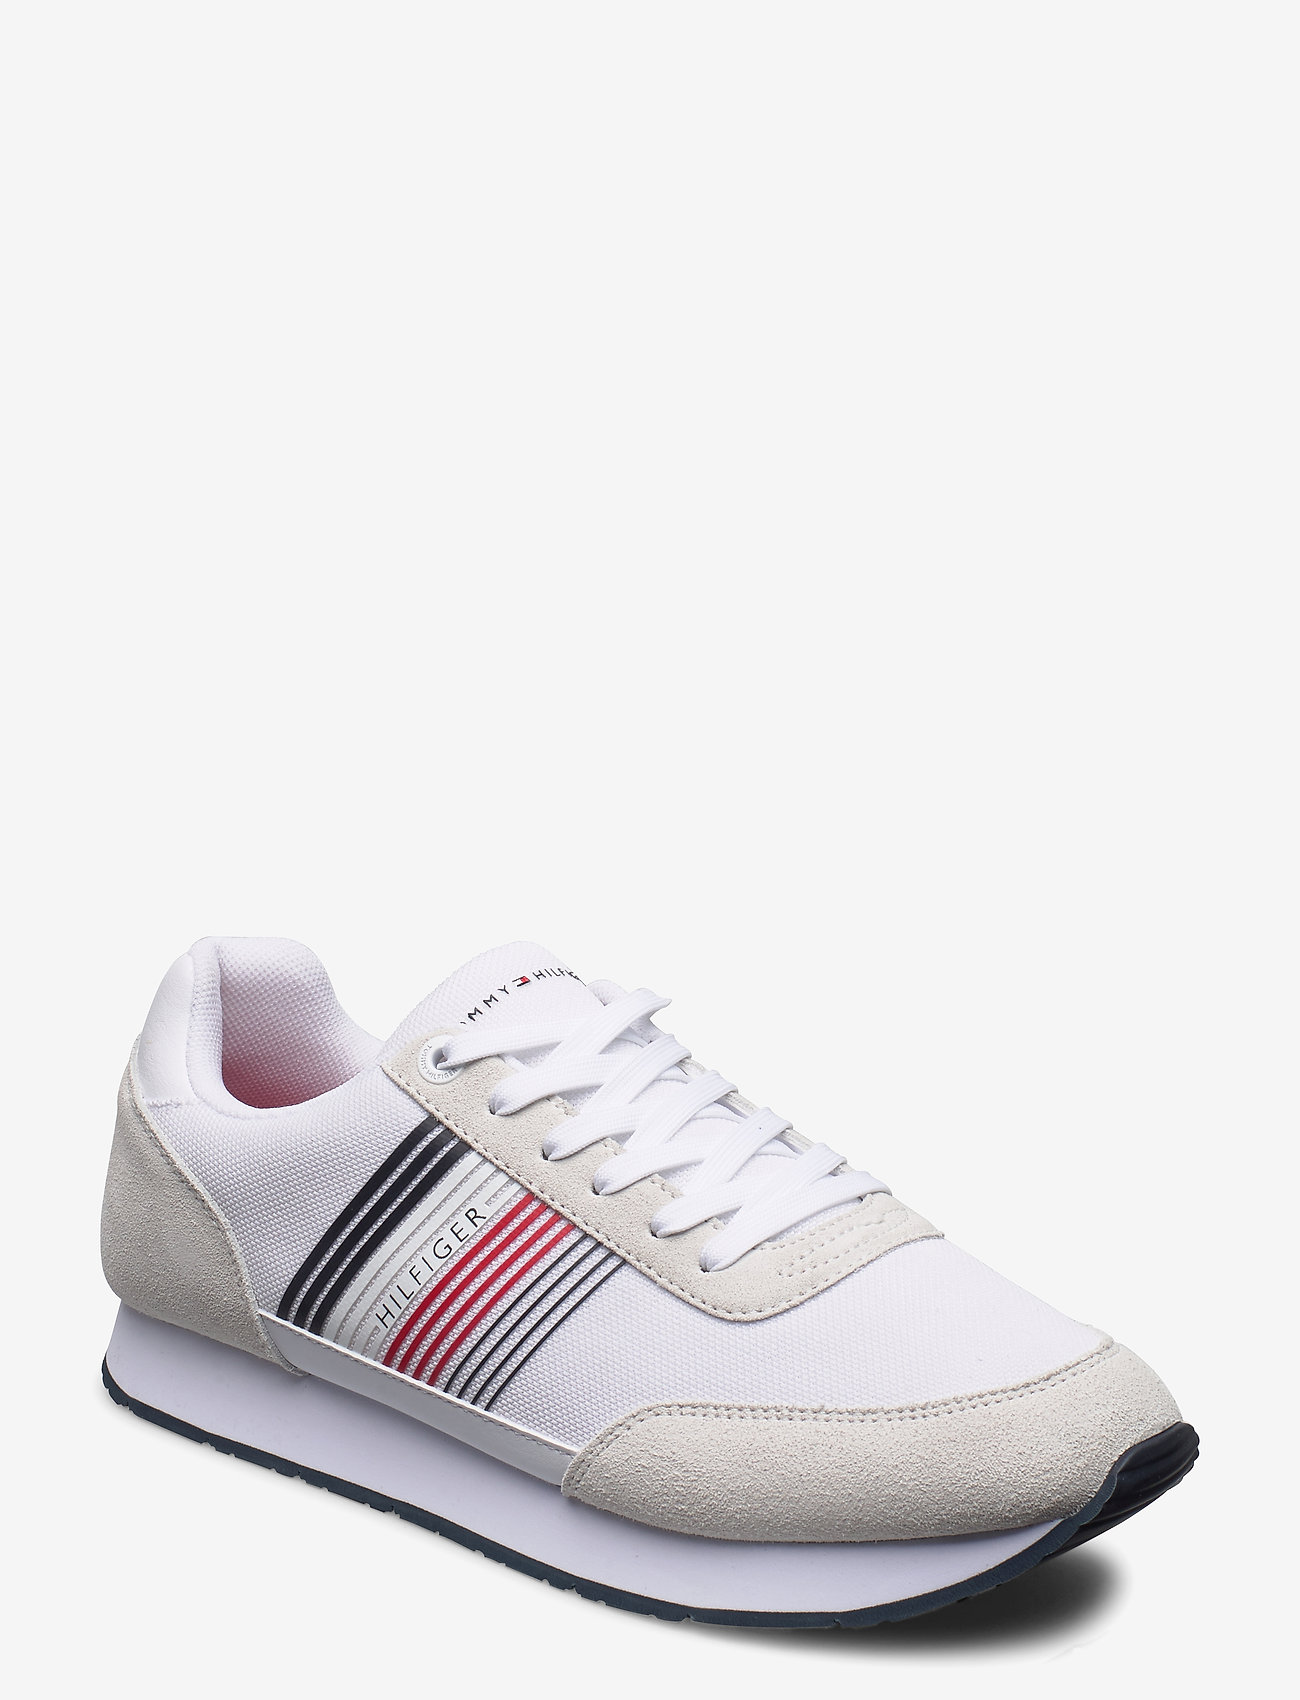 Tommy Hilfiger - CORPORATE MATERIAL MIX RUNNER - low tops - white - 0